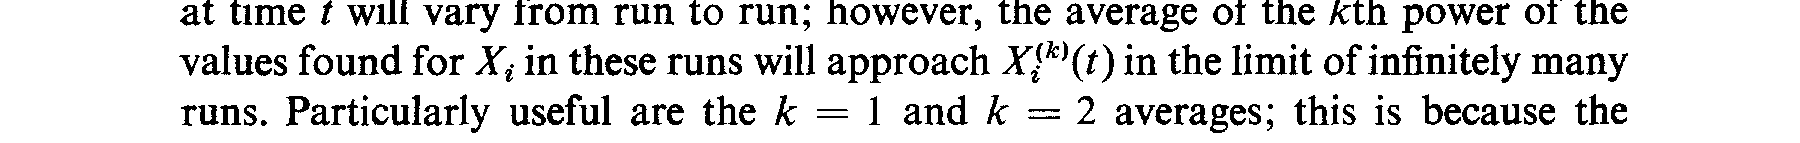 Particularly useful are the k = 1 and k = 2 averages; this is because the quantities and Jr,!